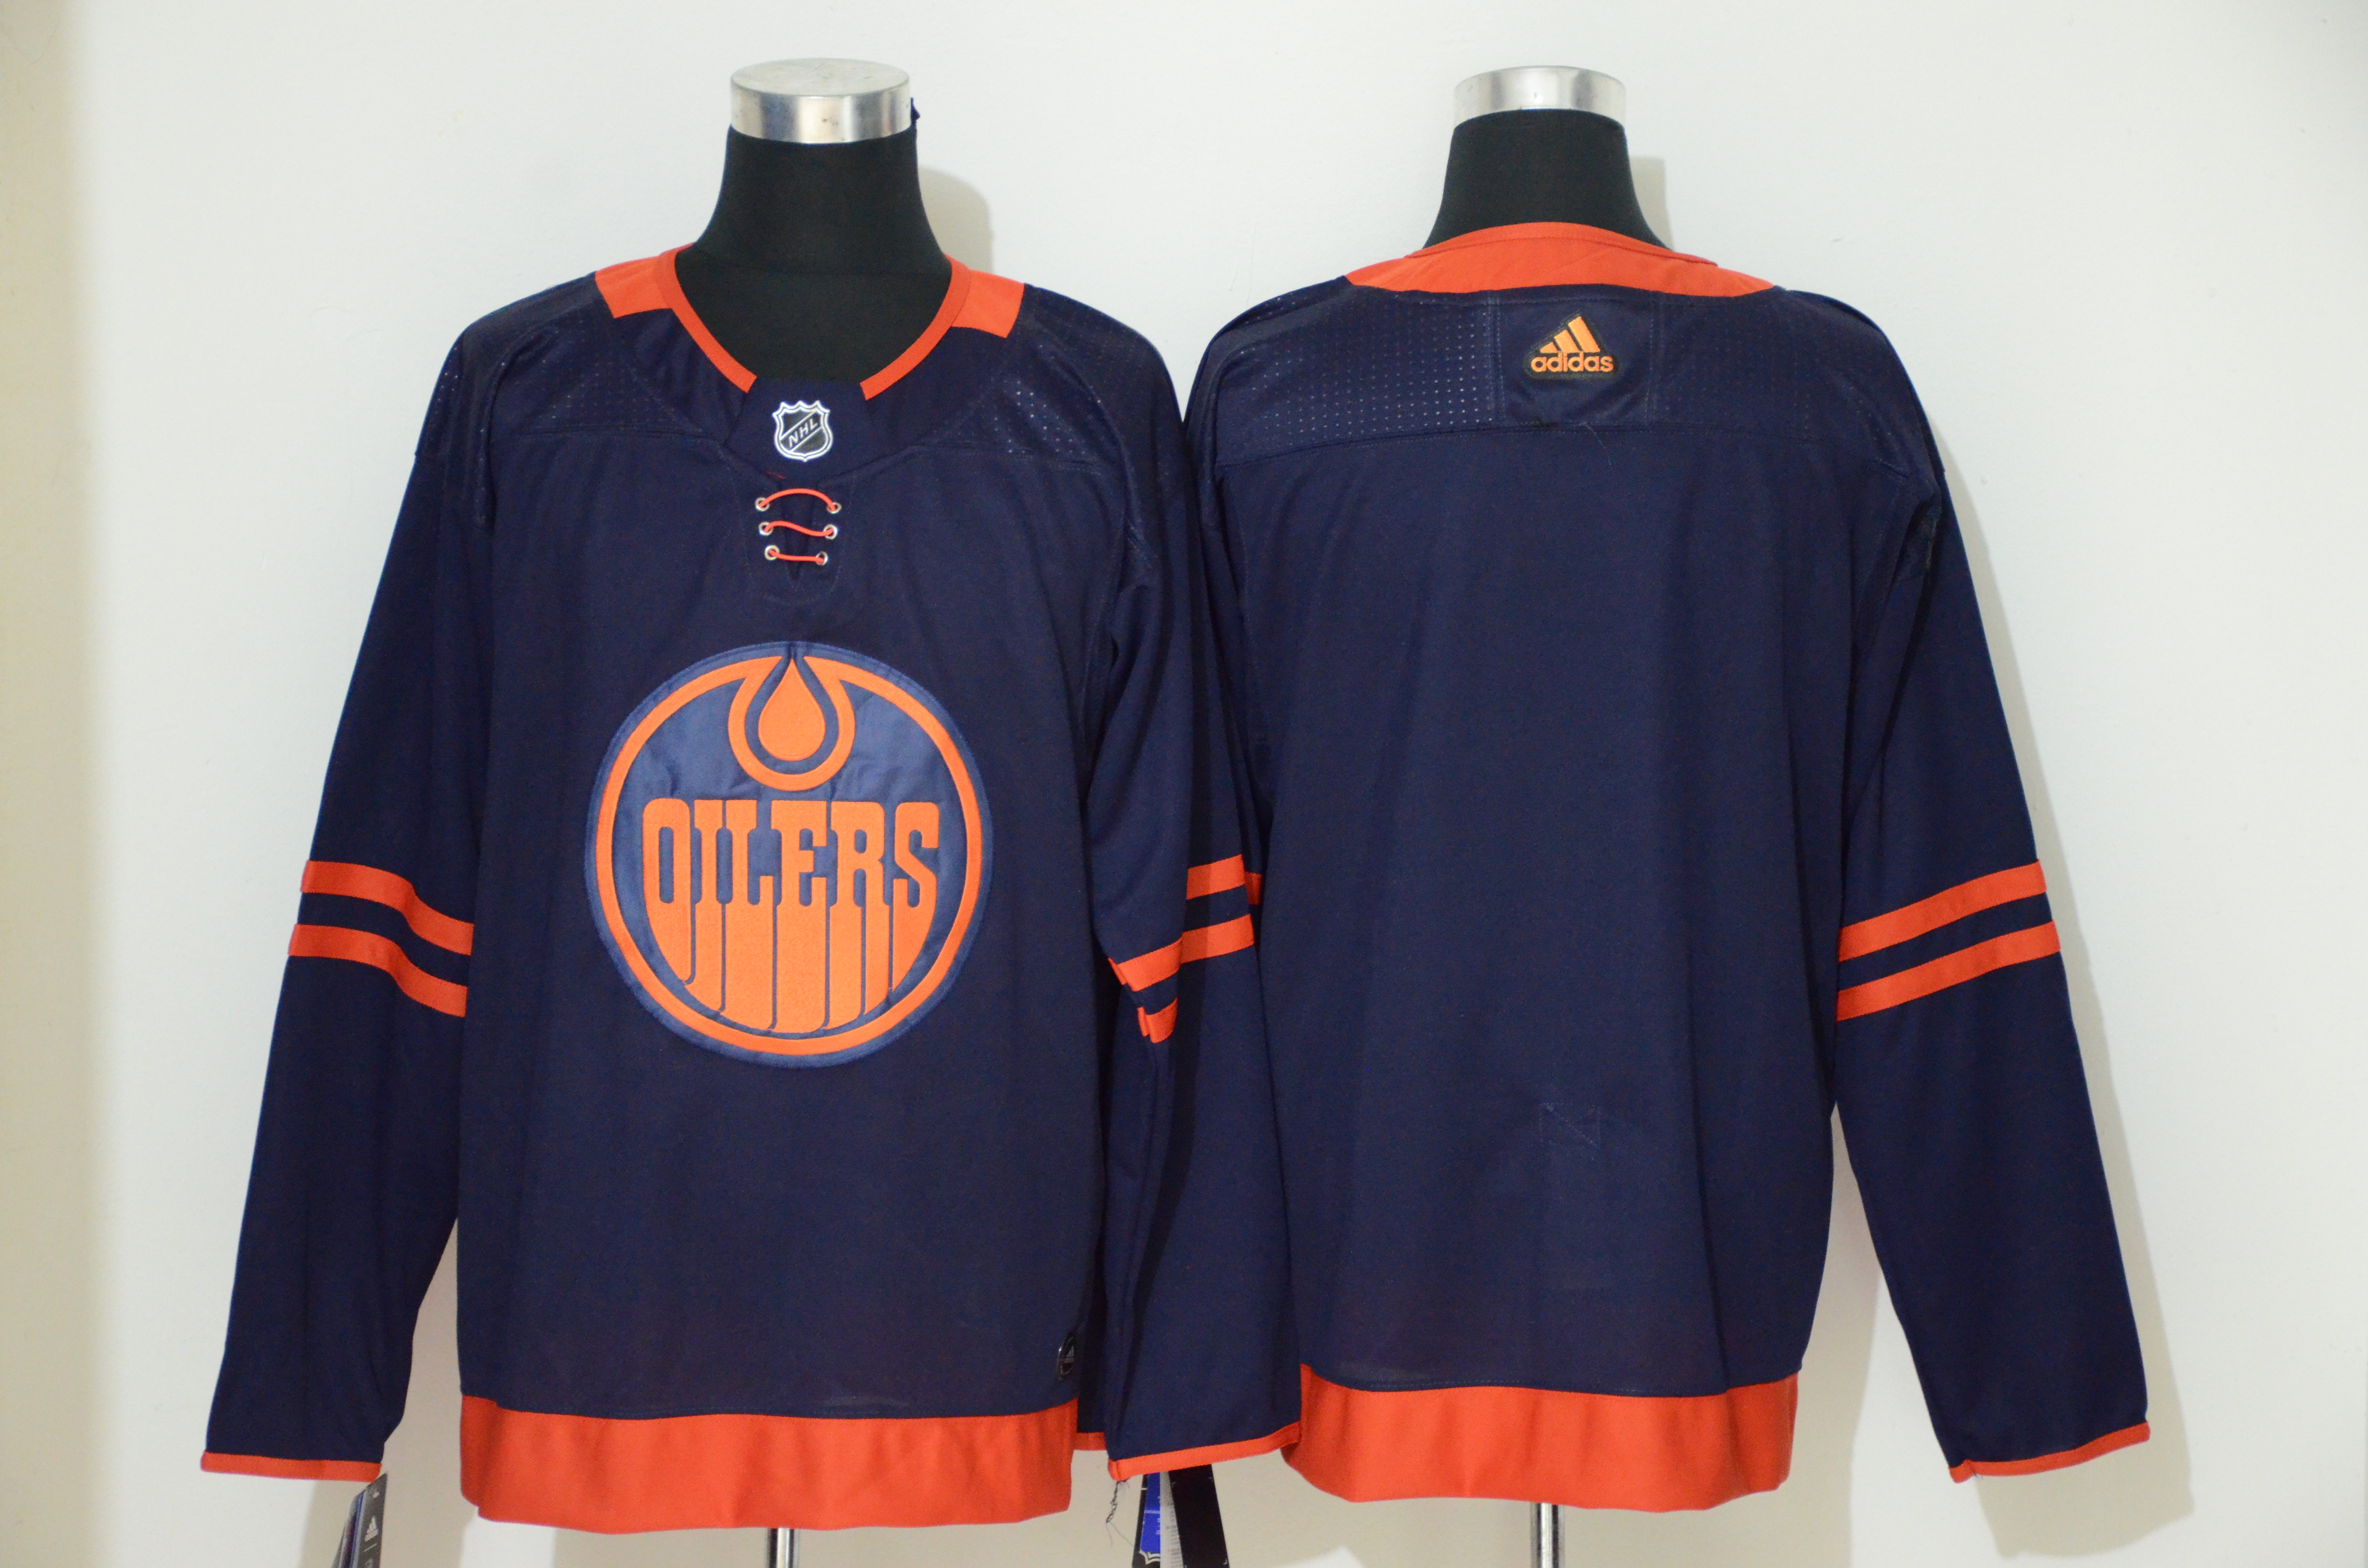 Oilers Blank Navy 50th anniversary Adidas Jersey